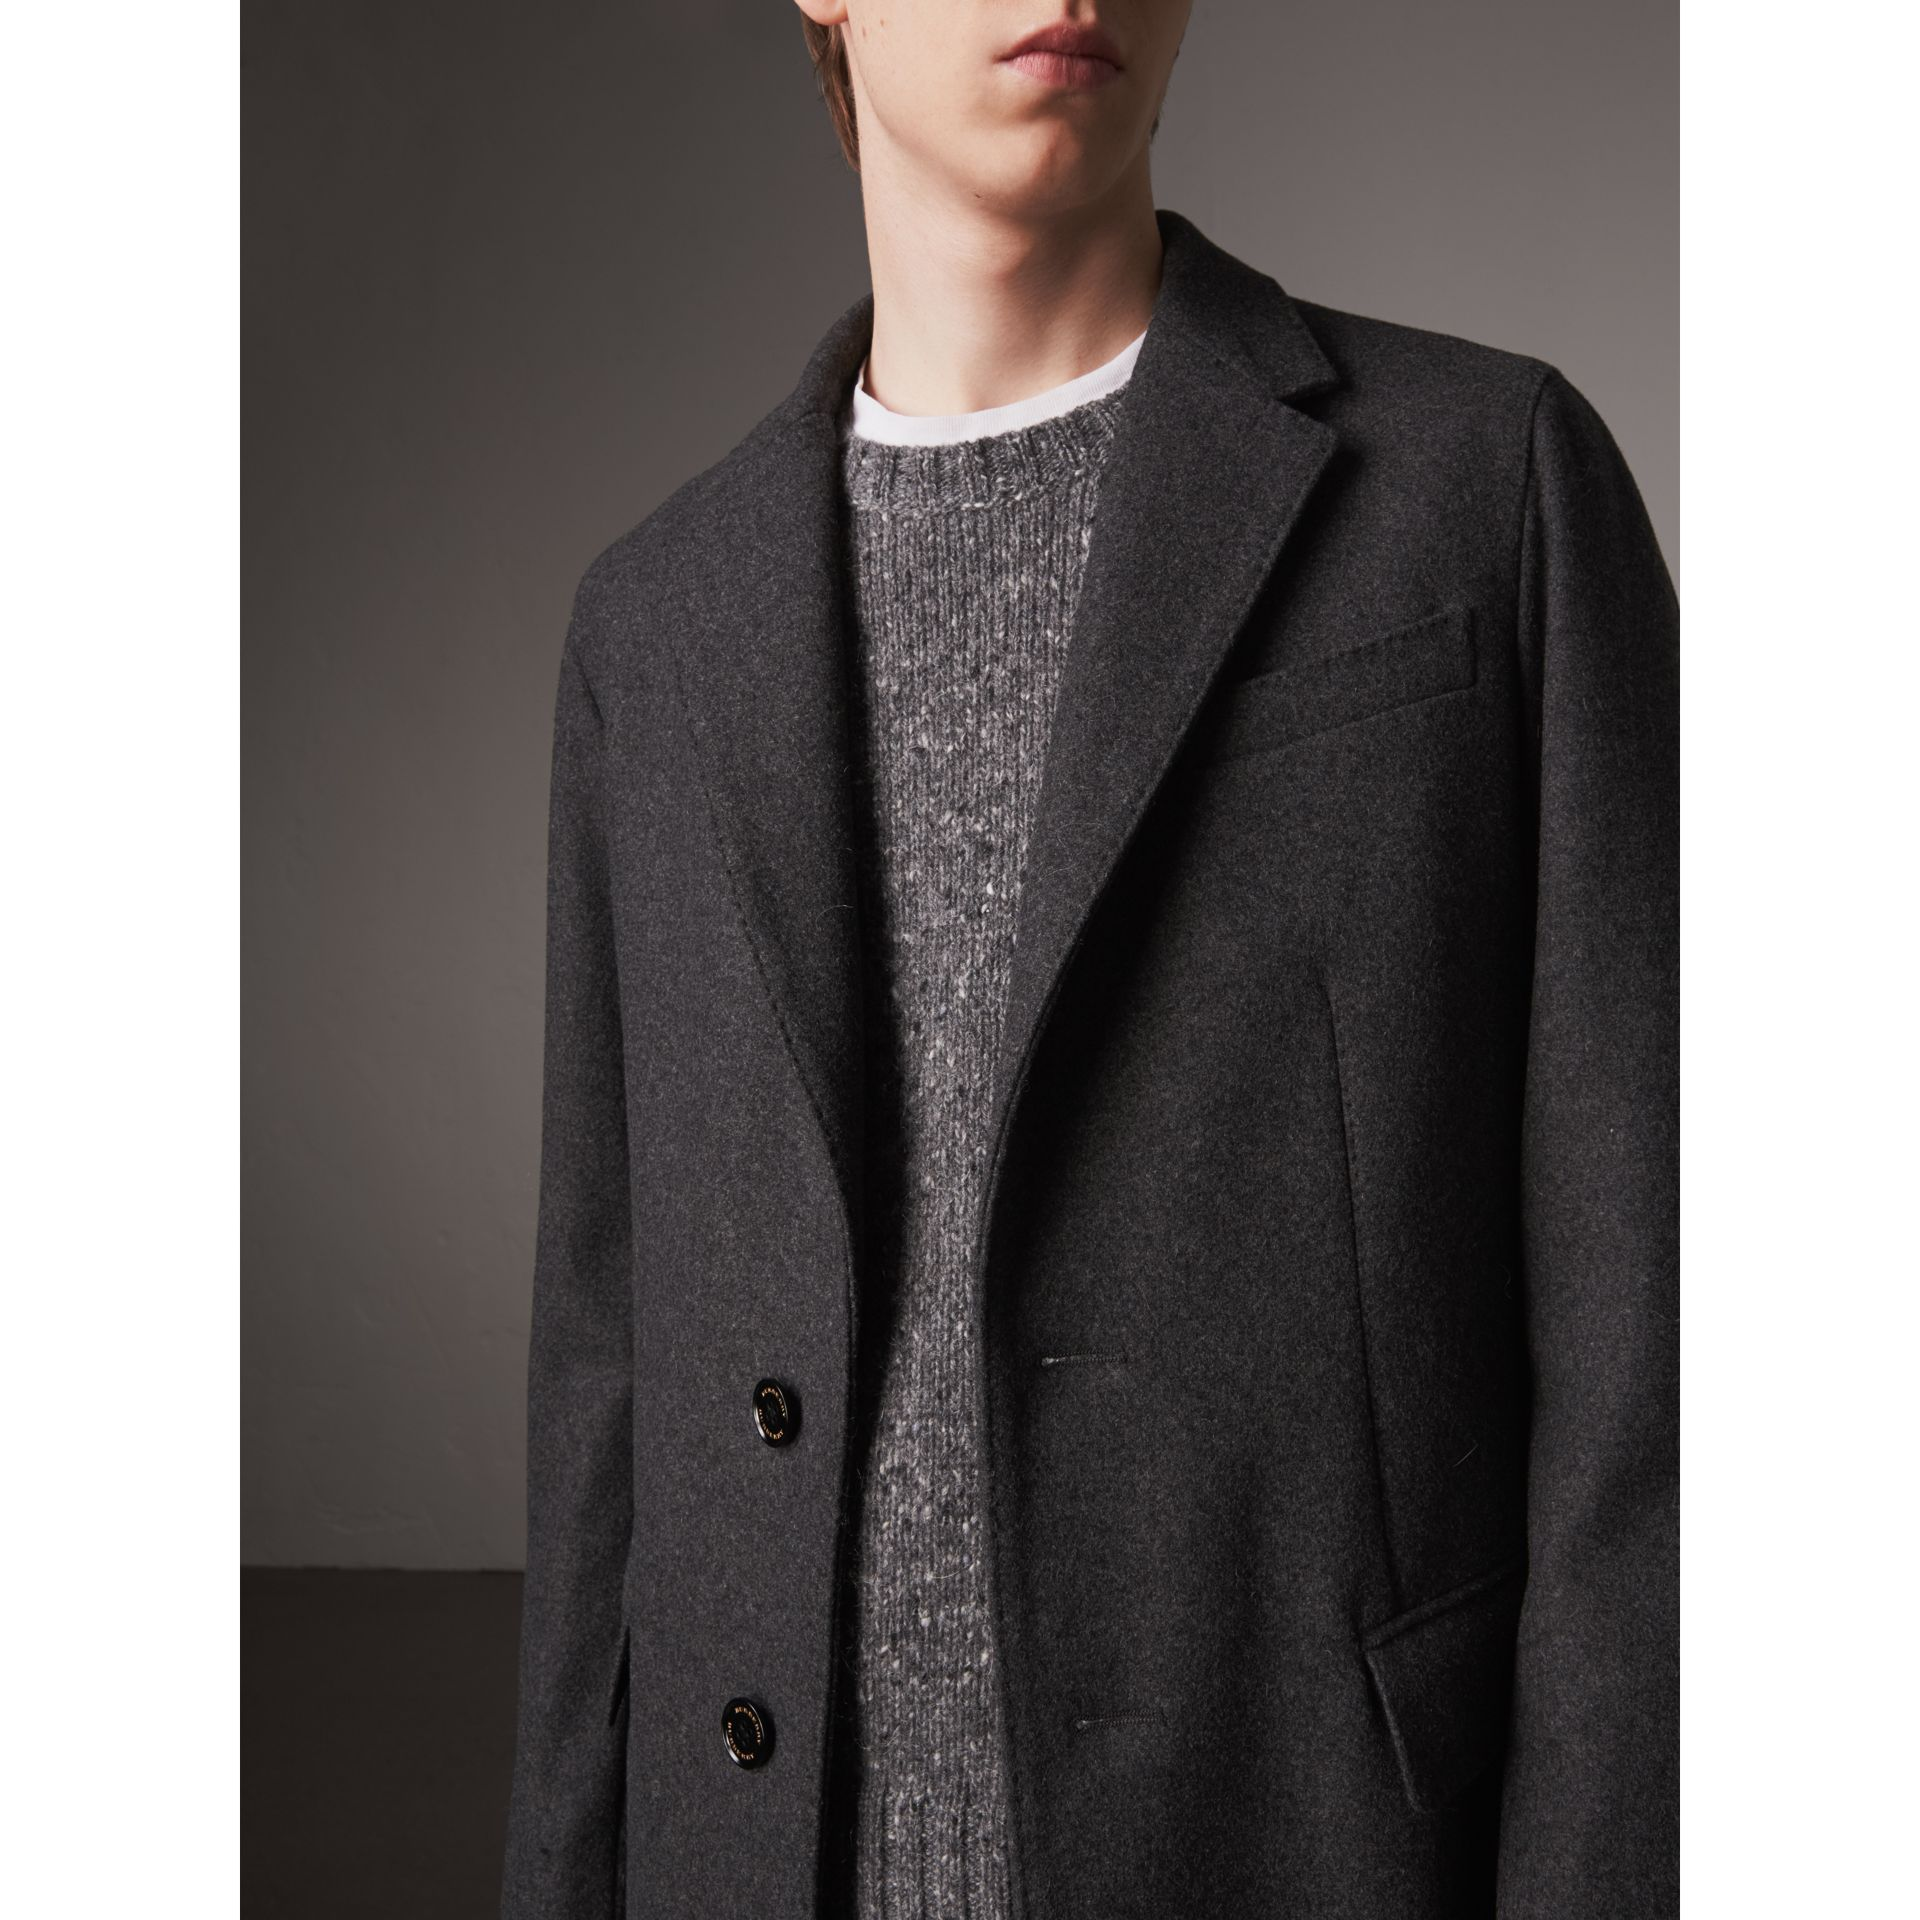 Melange Wool Blend Coat in Dark Grey - Men | Burberry - gallery image 1